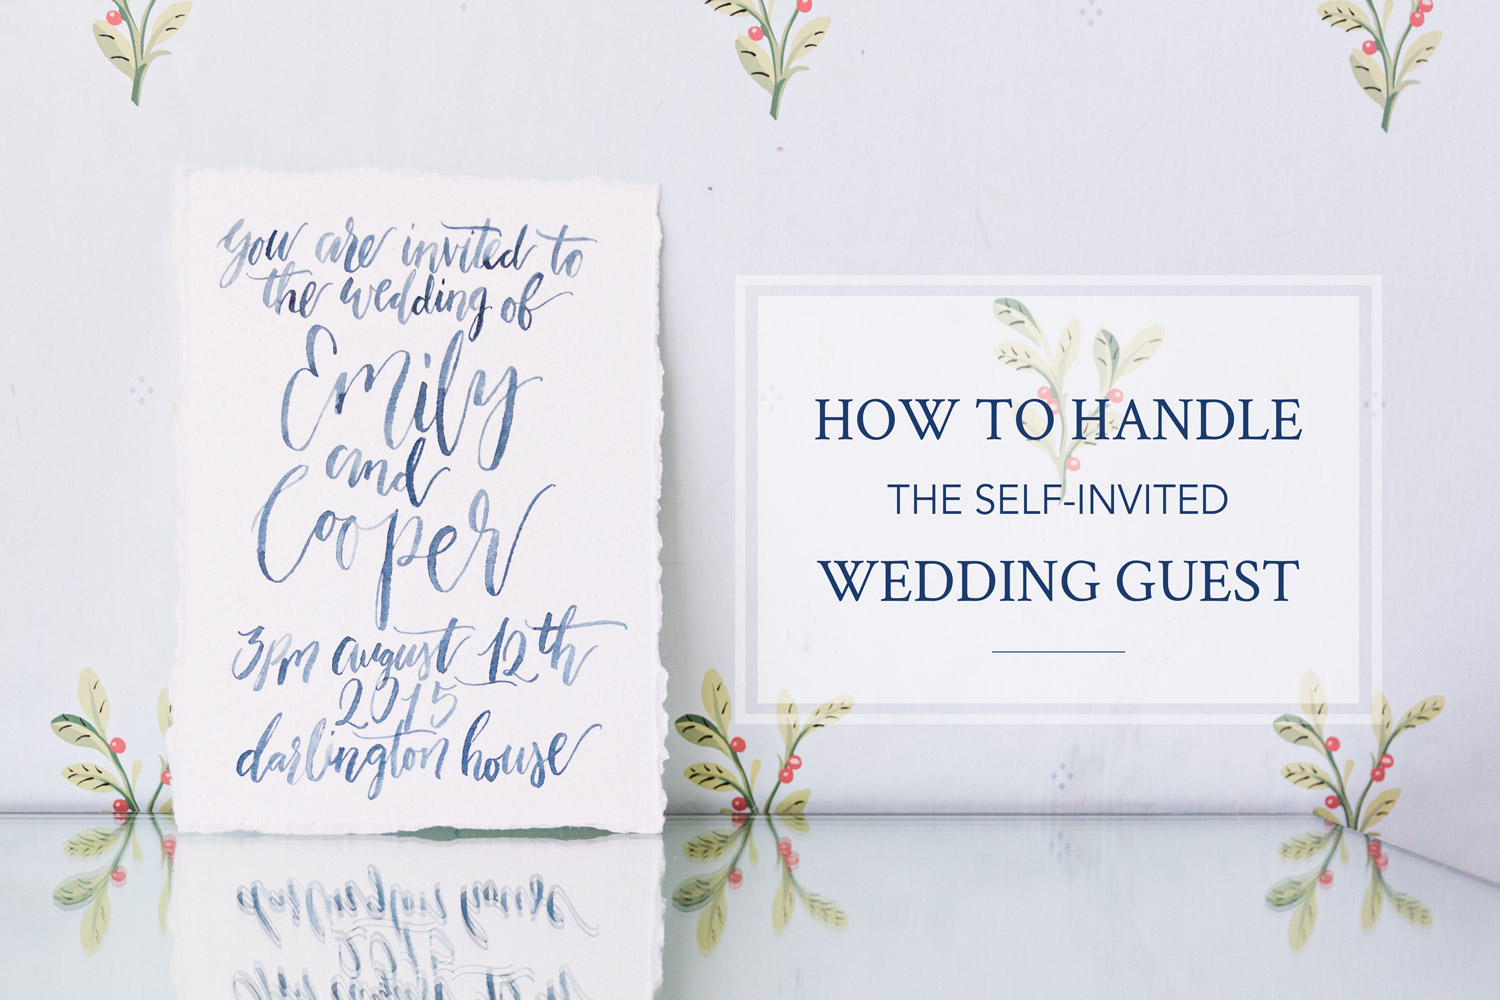 How to Handle the Self-Invited Wedding Guest